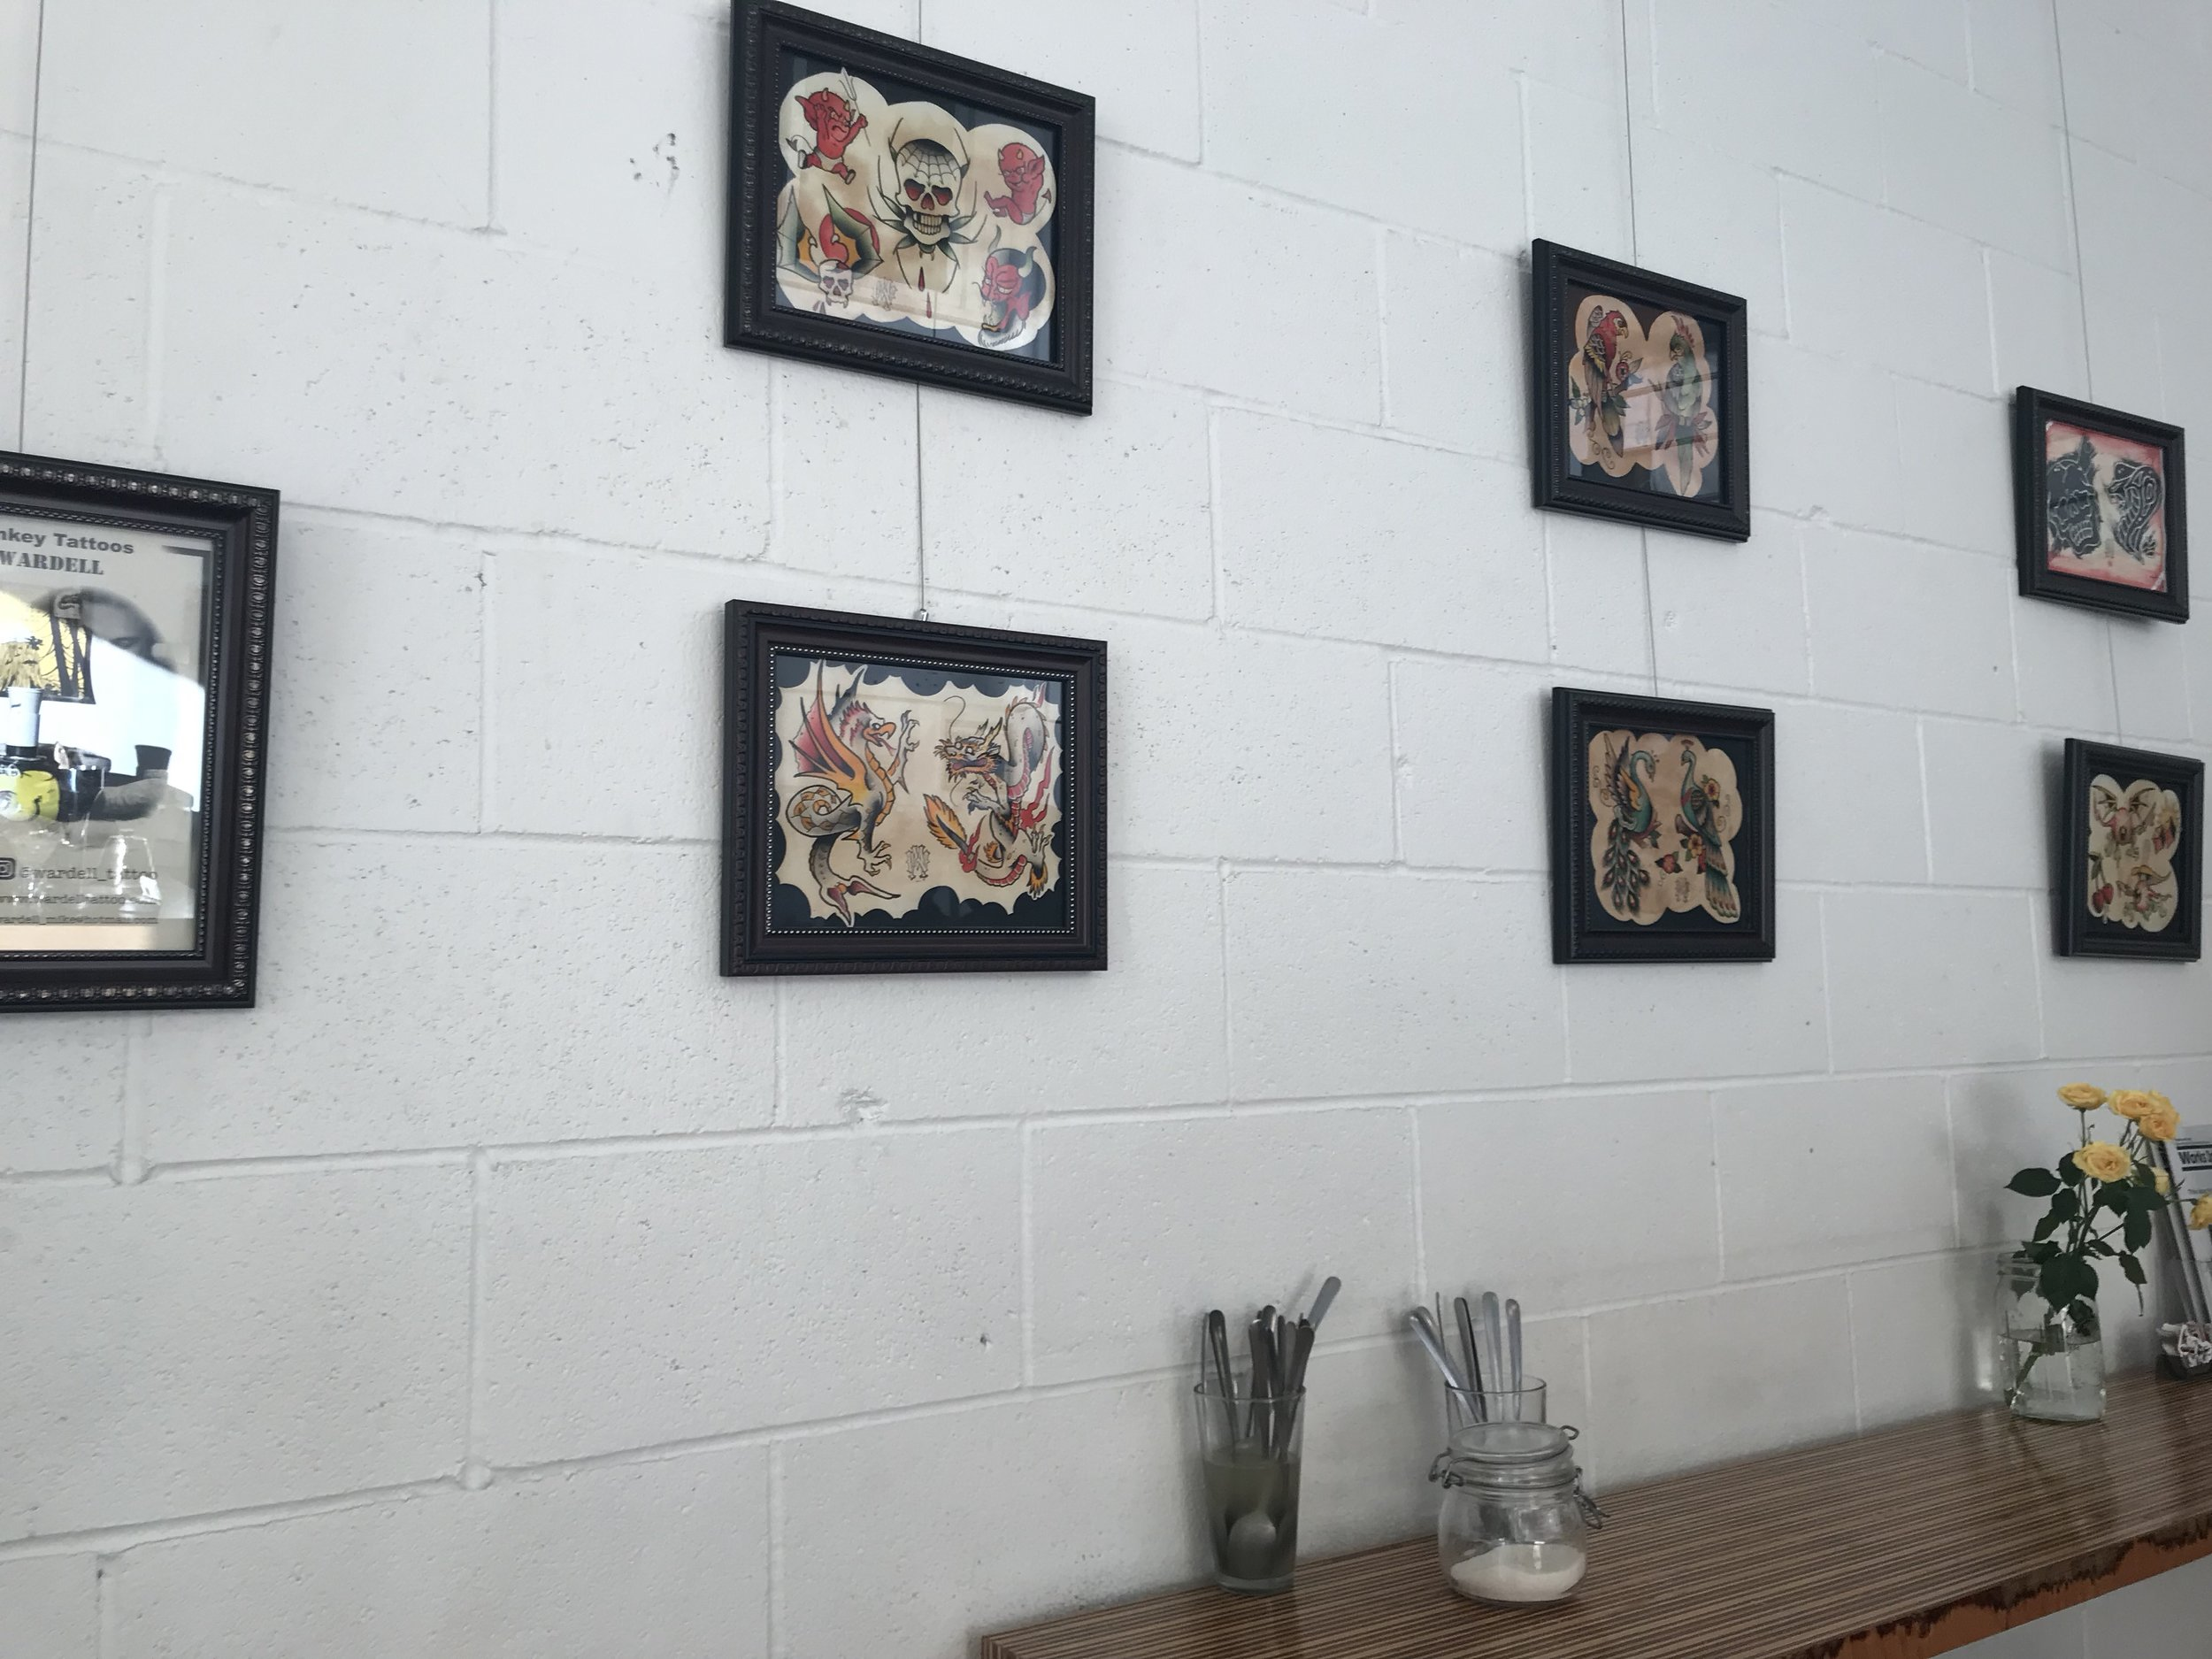 My art show, currently on display at Bar Francis located at 110 Franklin St. in downtown Olympia.